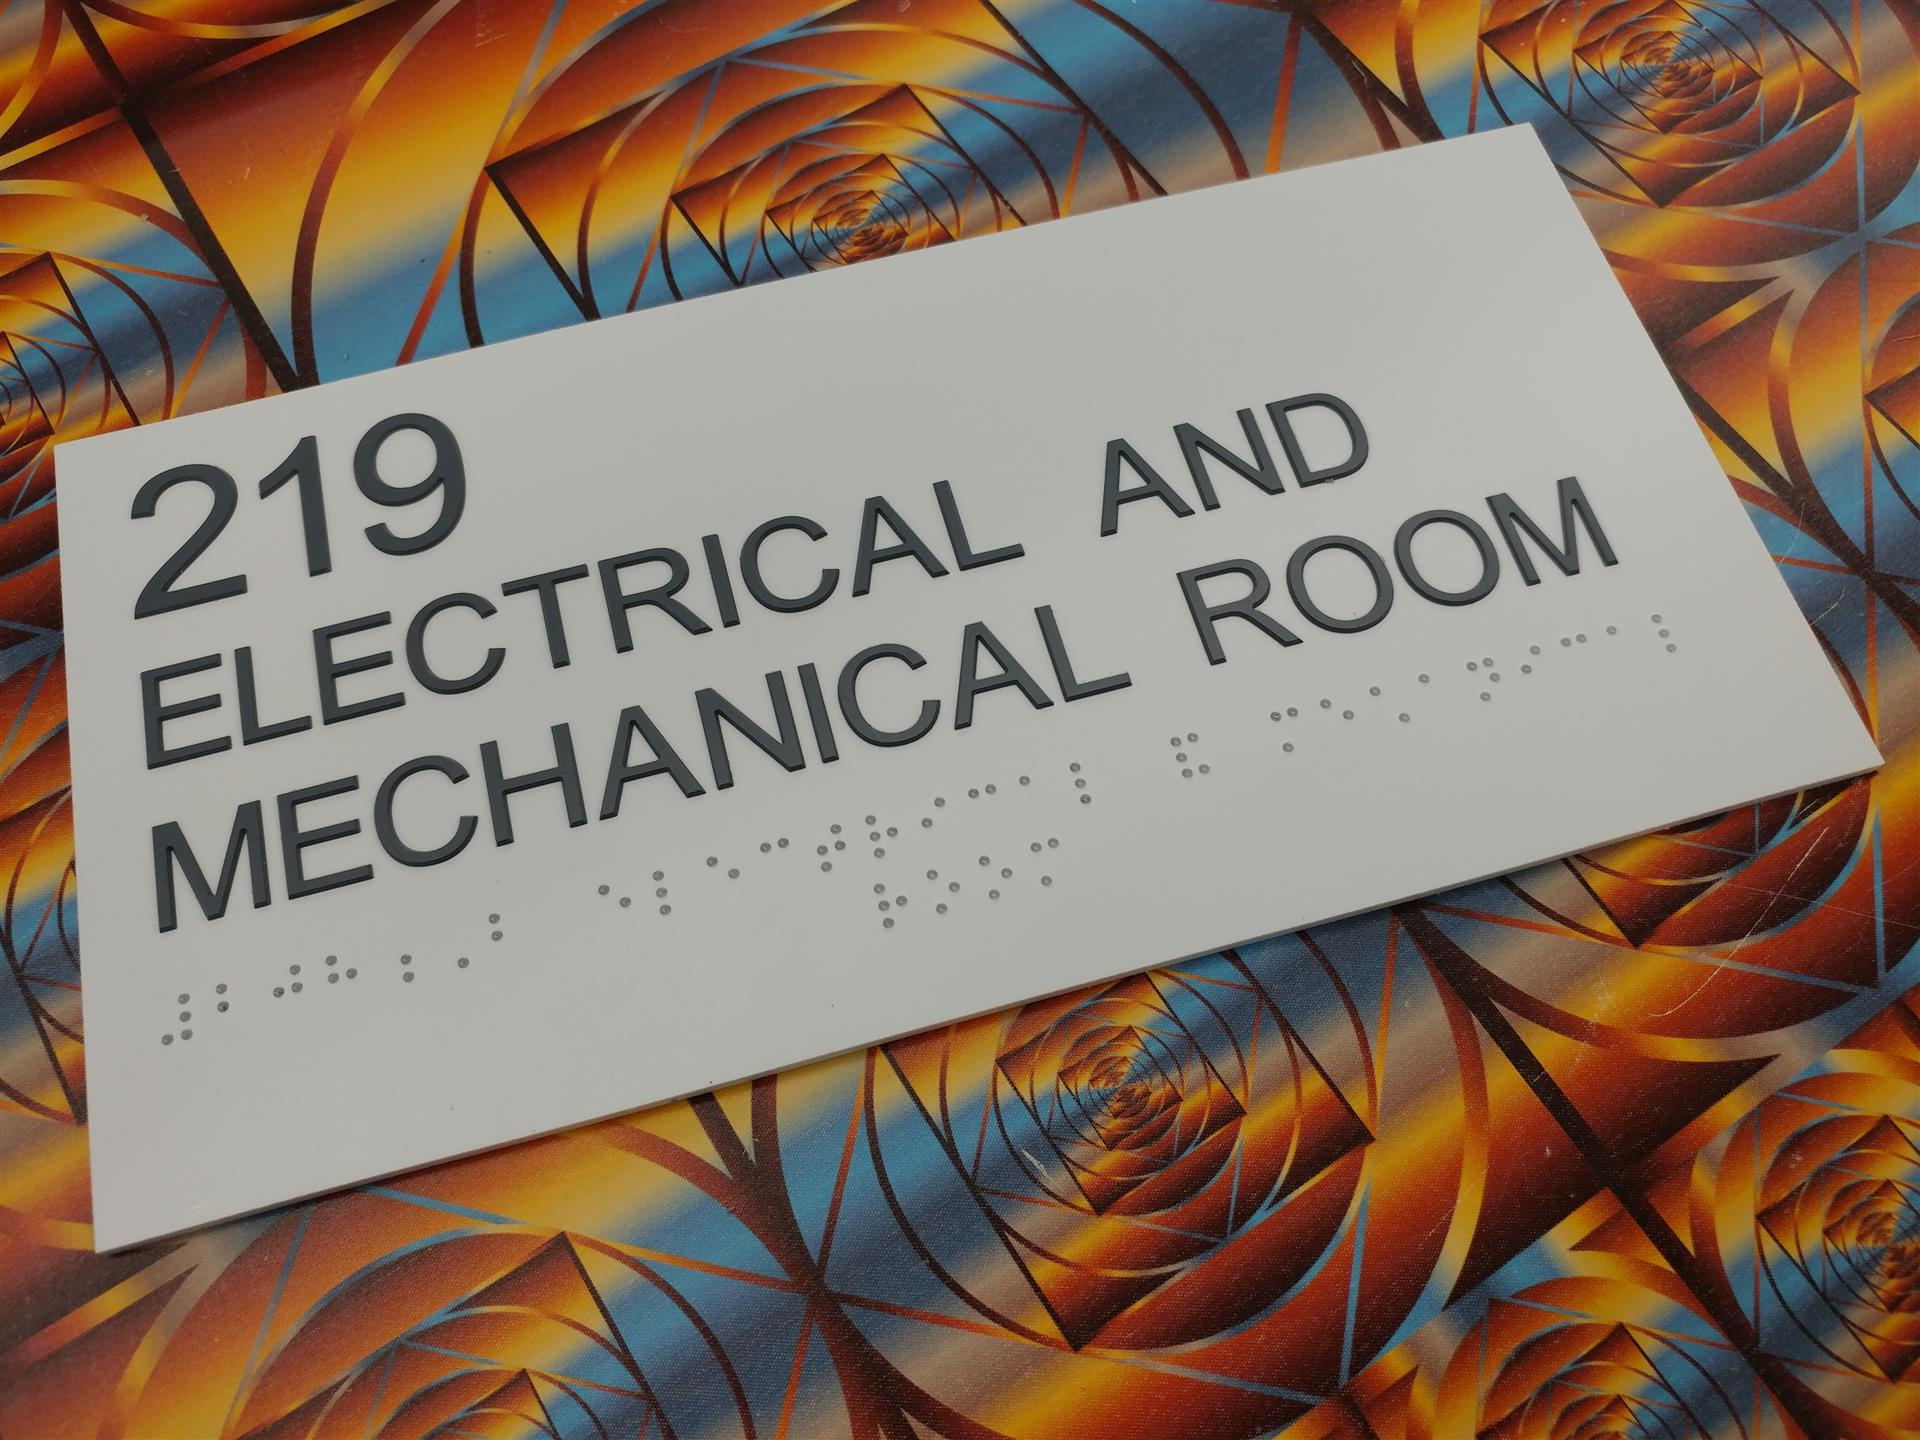 Electrical and Mechanical Room ADA Sign